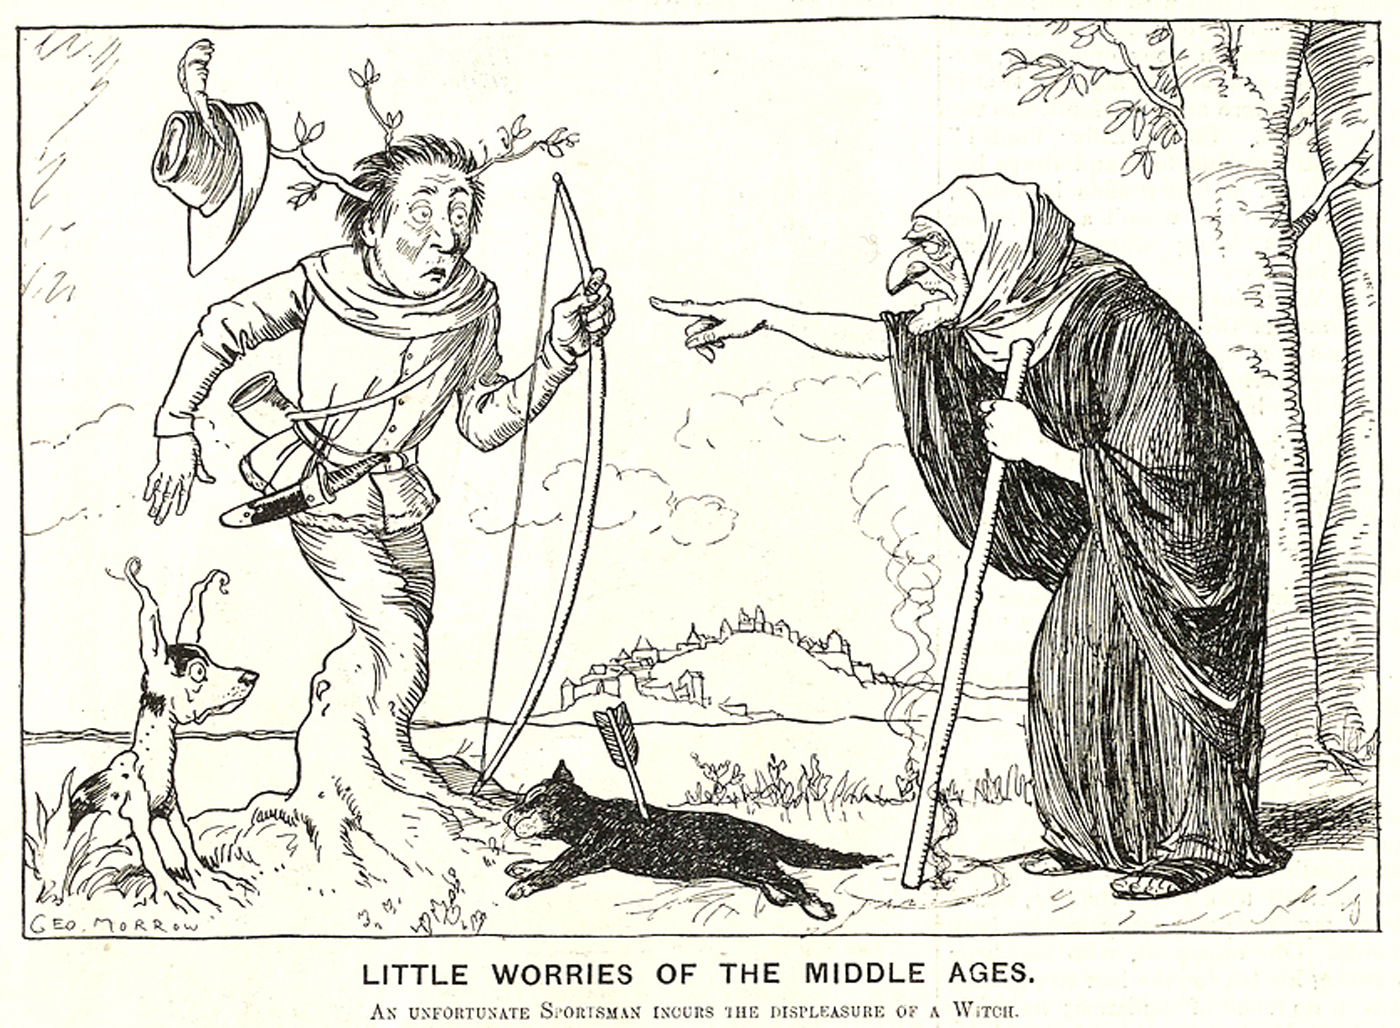 Little Worries of the Middle Ages. An unfortunate sportsman incurs the displeasure of a witch. © Punch Ltd